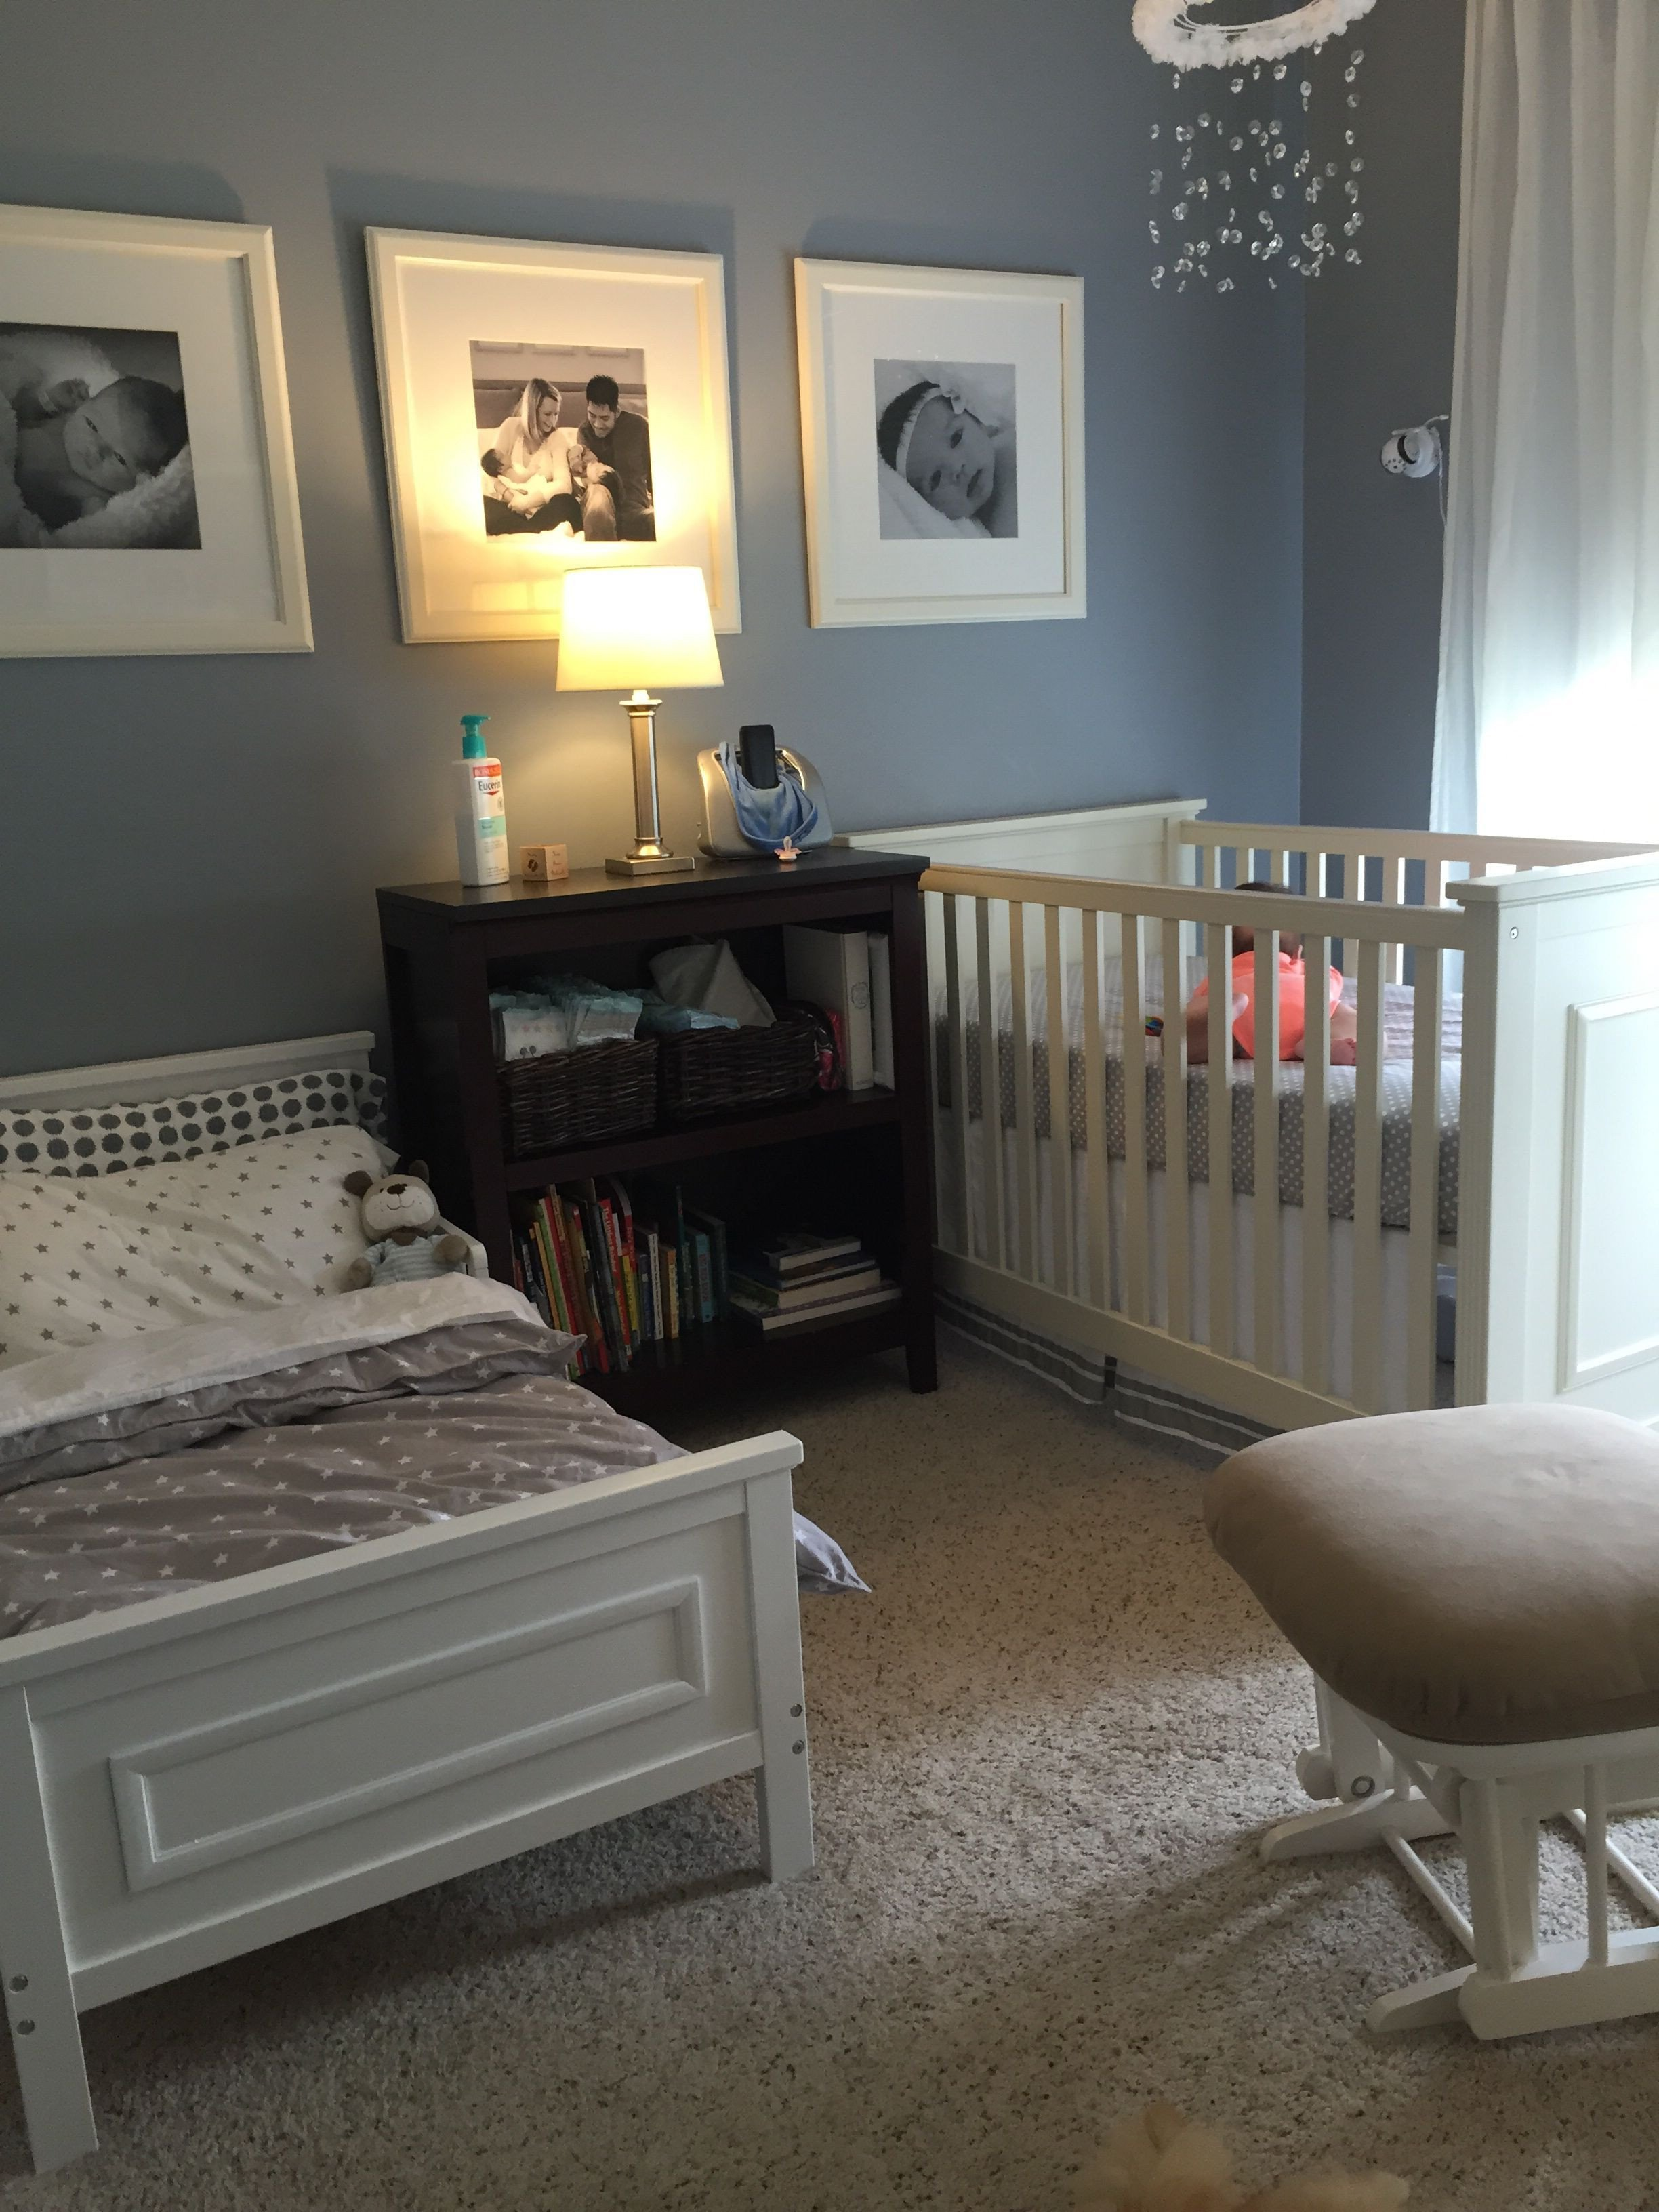 Toddlers Boys Room Decor Ideas Unique Neutral Room for toddler Boy and Baby Girl Boy and Girl D Bedroom Ideas